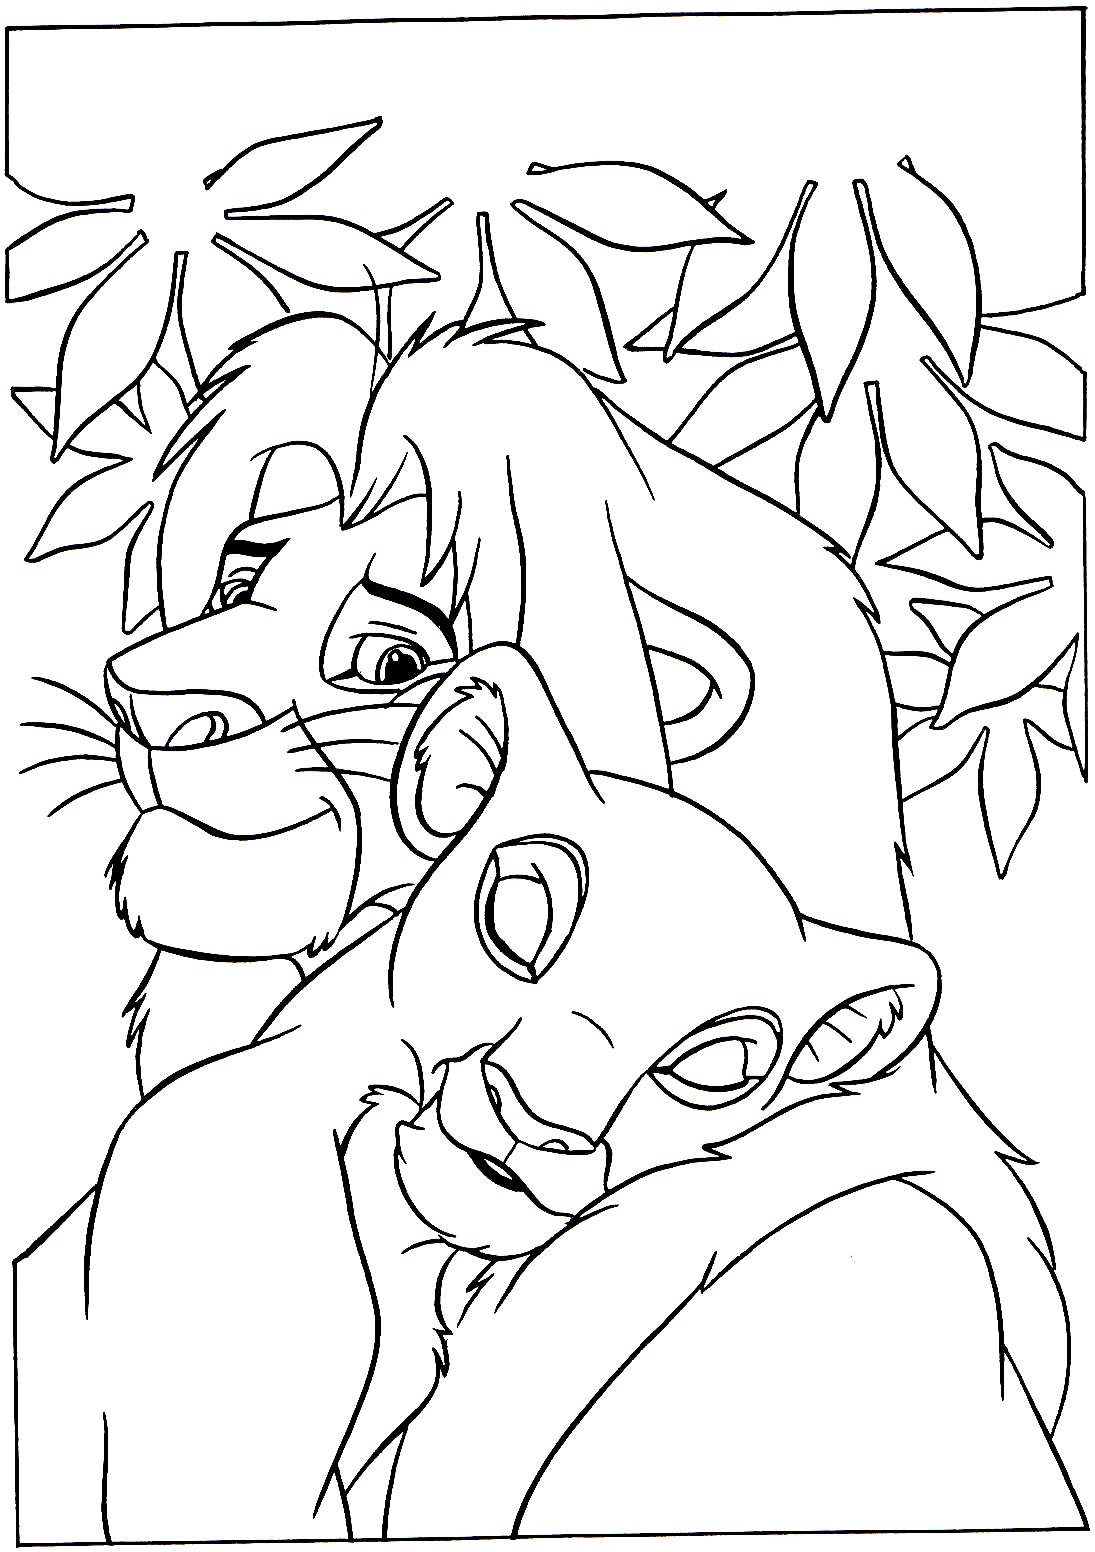 Lovely coloring page of Mufasa with Nala the parents of Simba